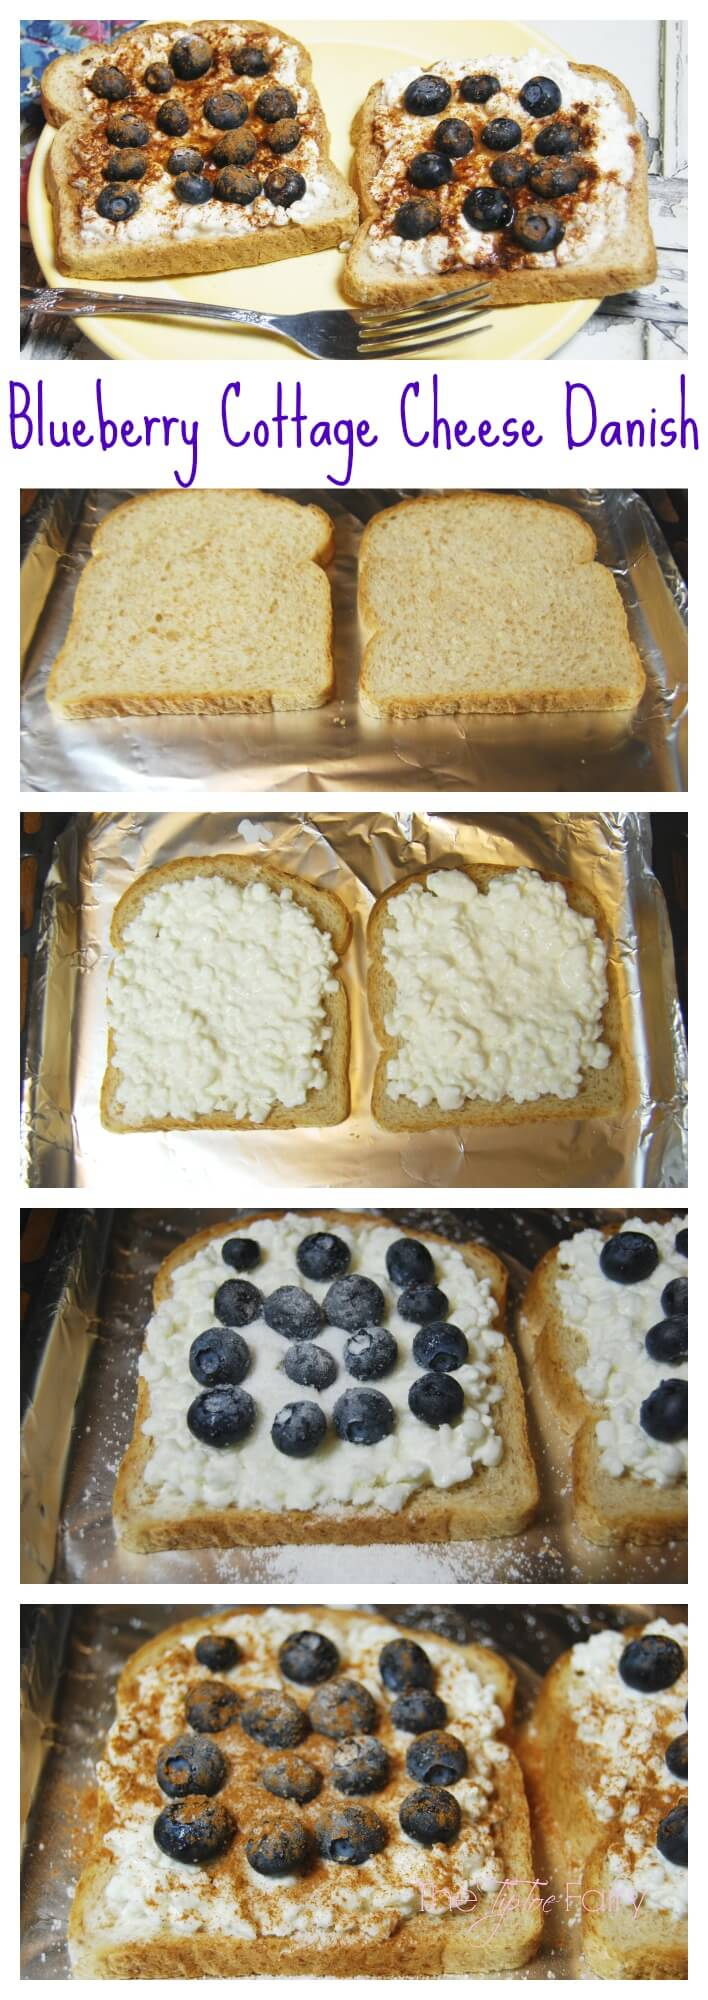 Blueberry Cottage Cheese Danish - a quick and delicious meal to start your New Year's resolution off right. With less than 300 calories for TWO!   The TipToe Fairy #LittleChanges #IC #ad